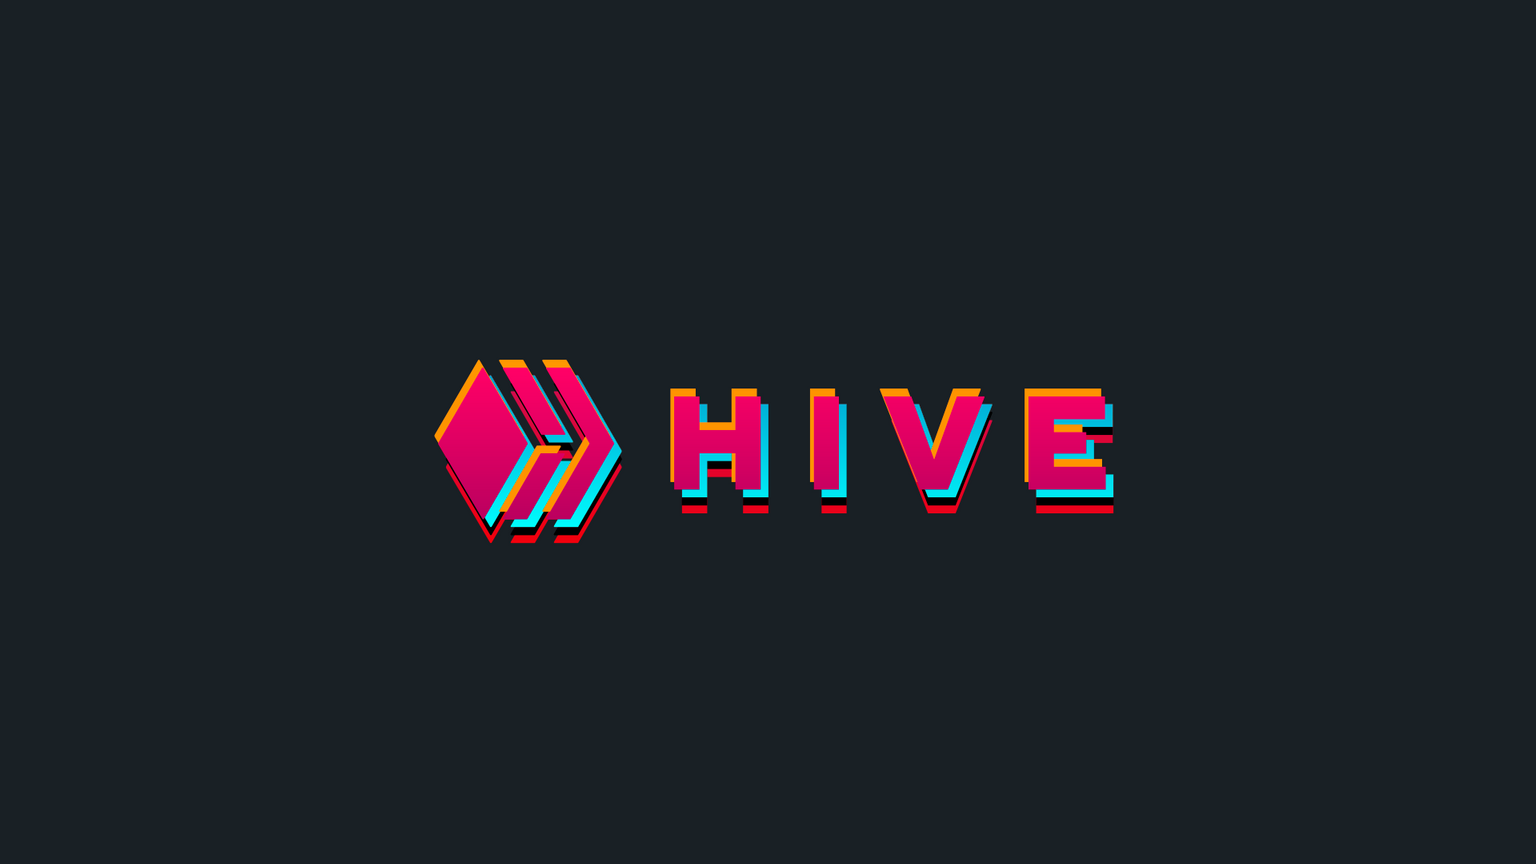 Introduction to what is Hive crypto.